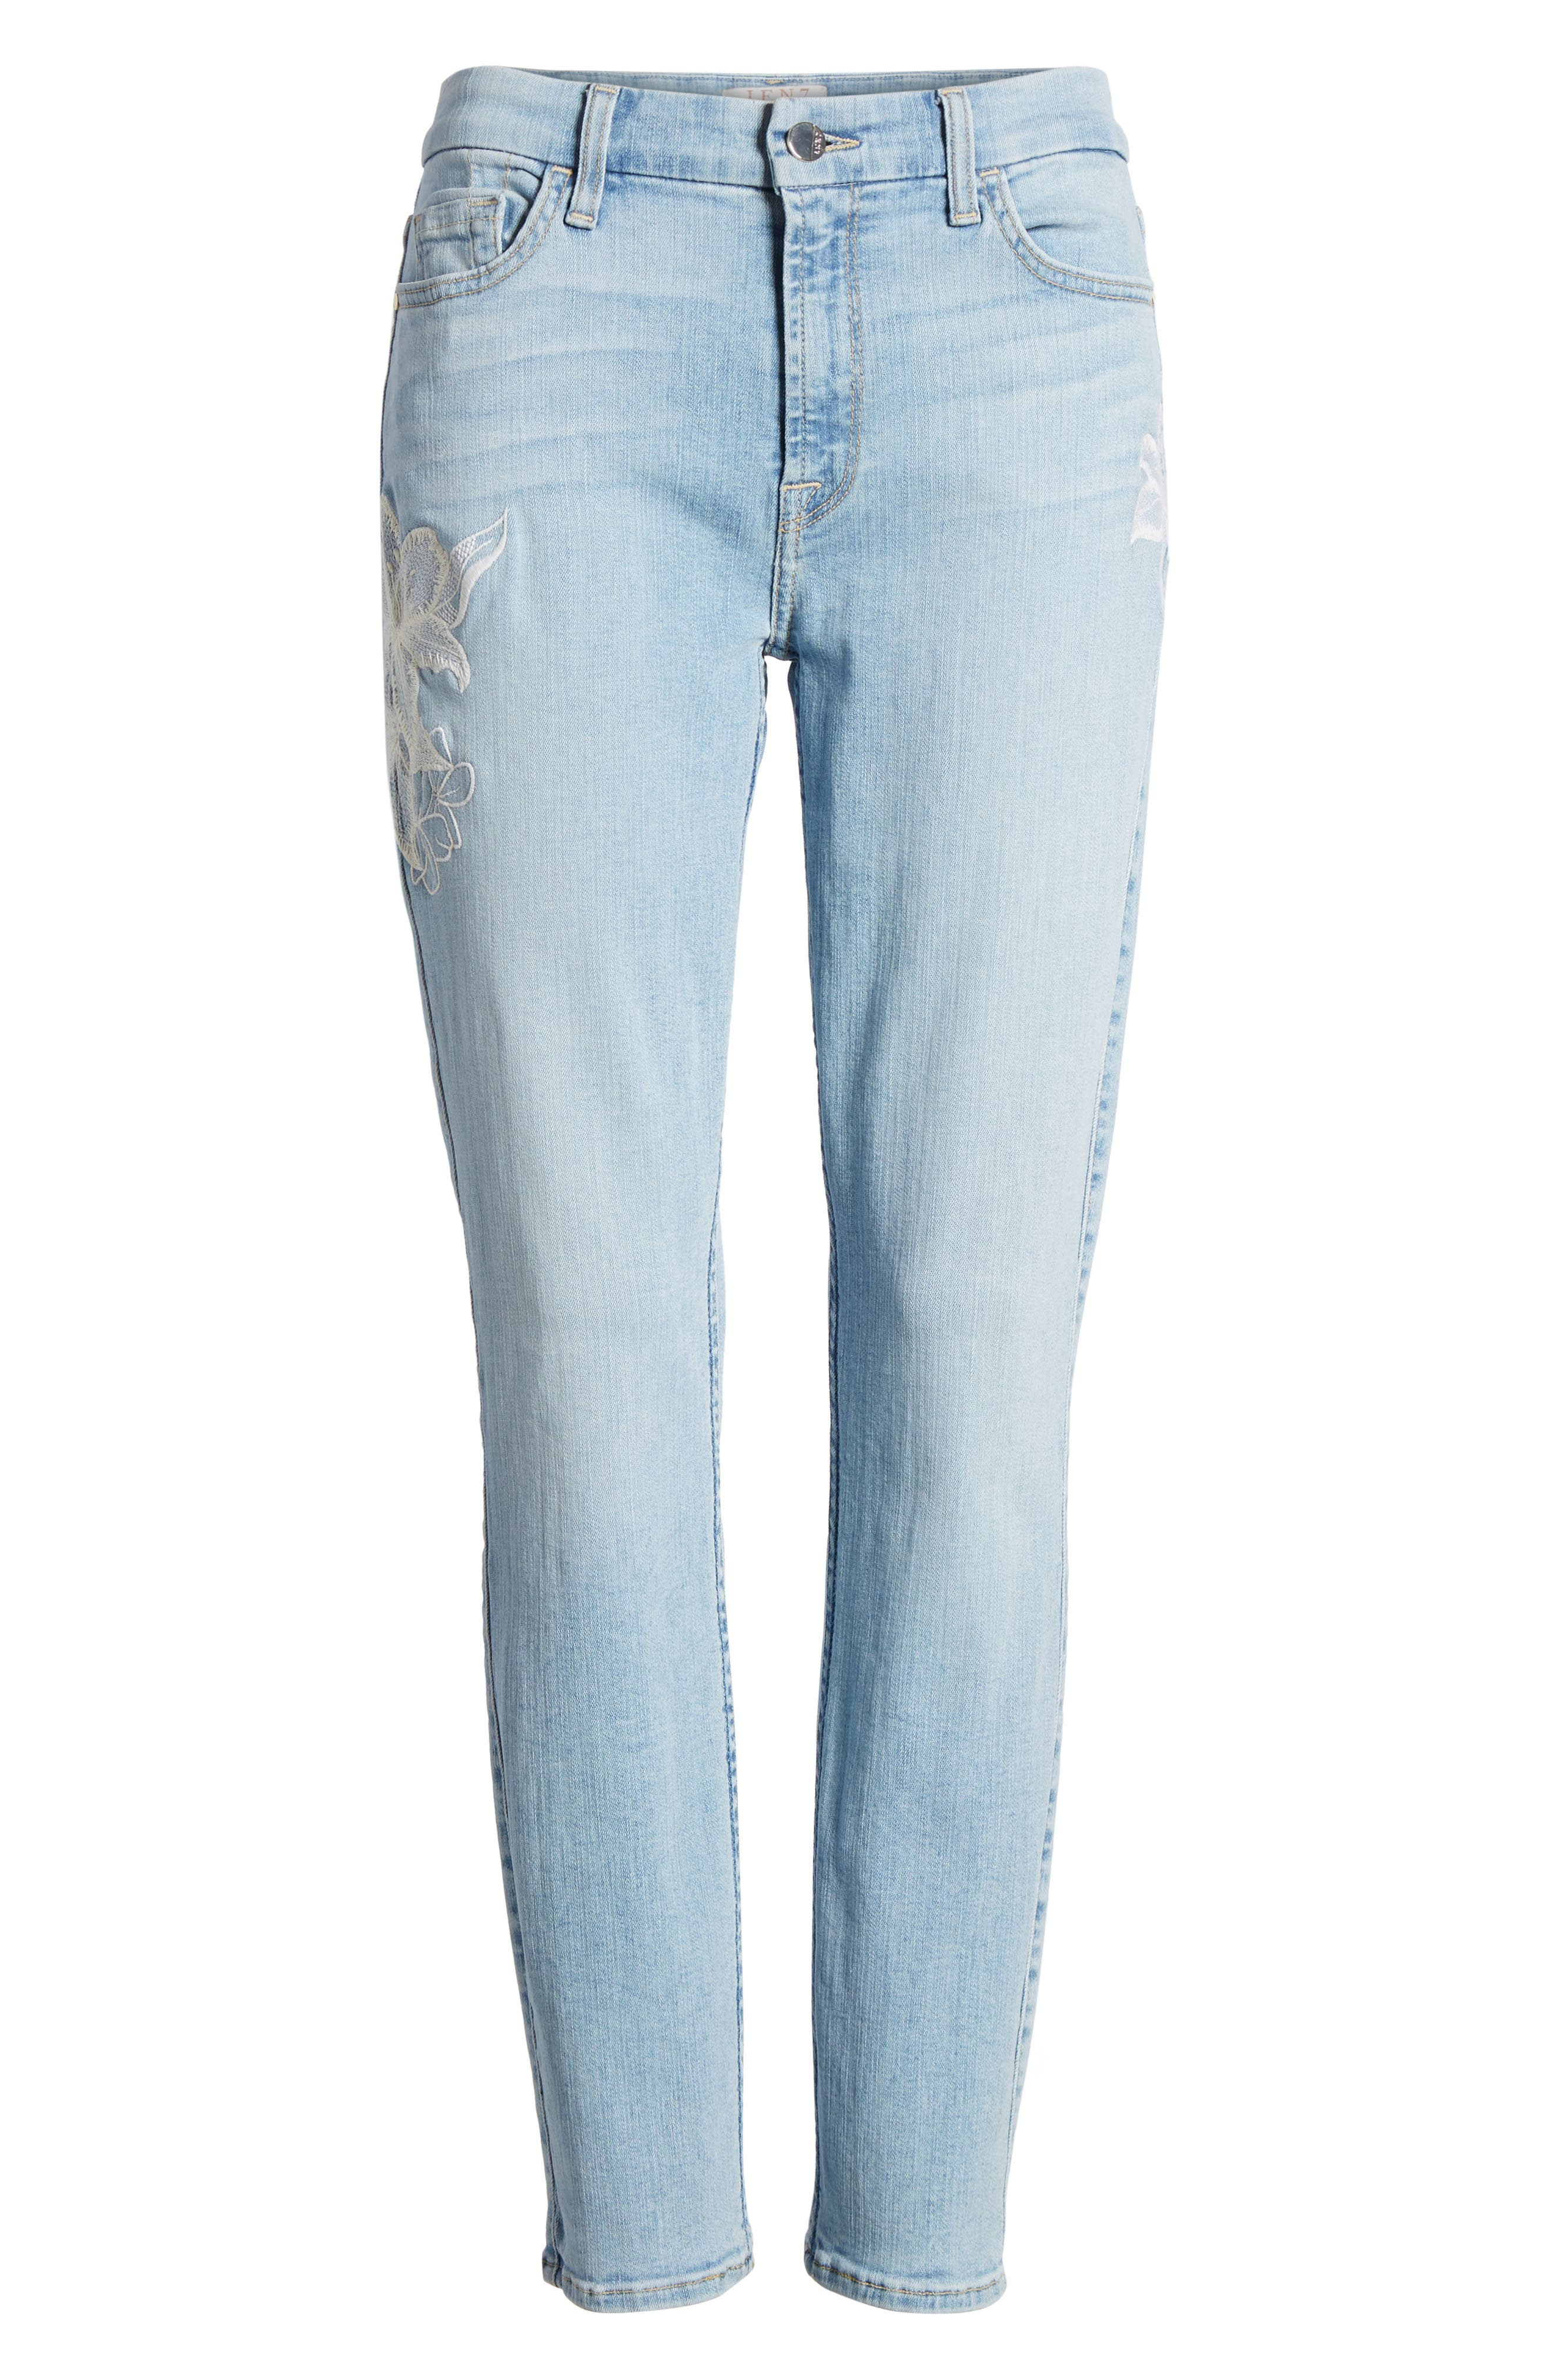 Jen 7 Embroidered Stretch Sklnny Ankle Jeans,                             Alternate thumbnail 7, color,                             Riche Touch Playa Vista